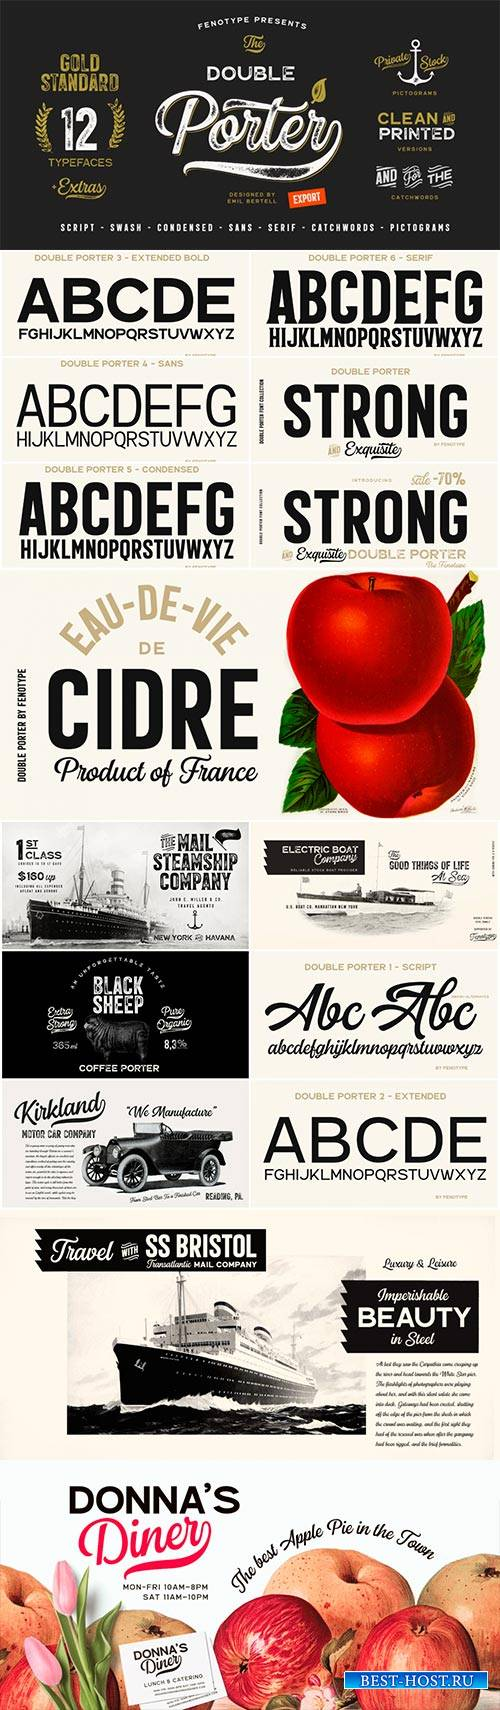 Double Porter Font Family - 18 Fonts